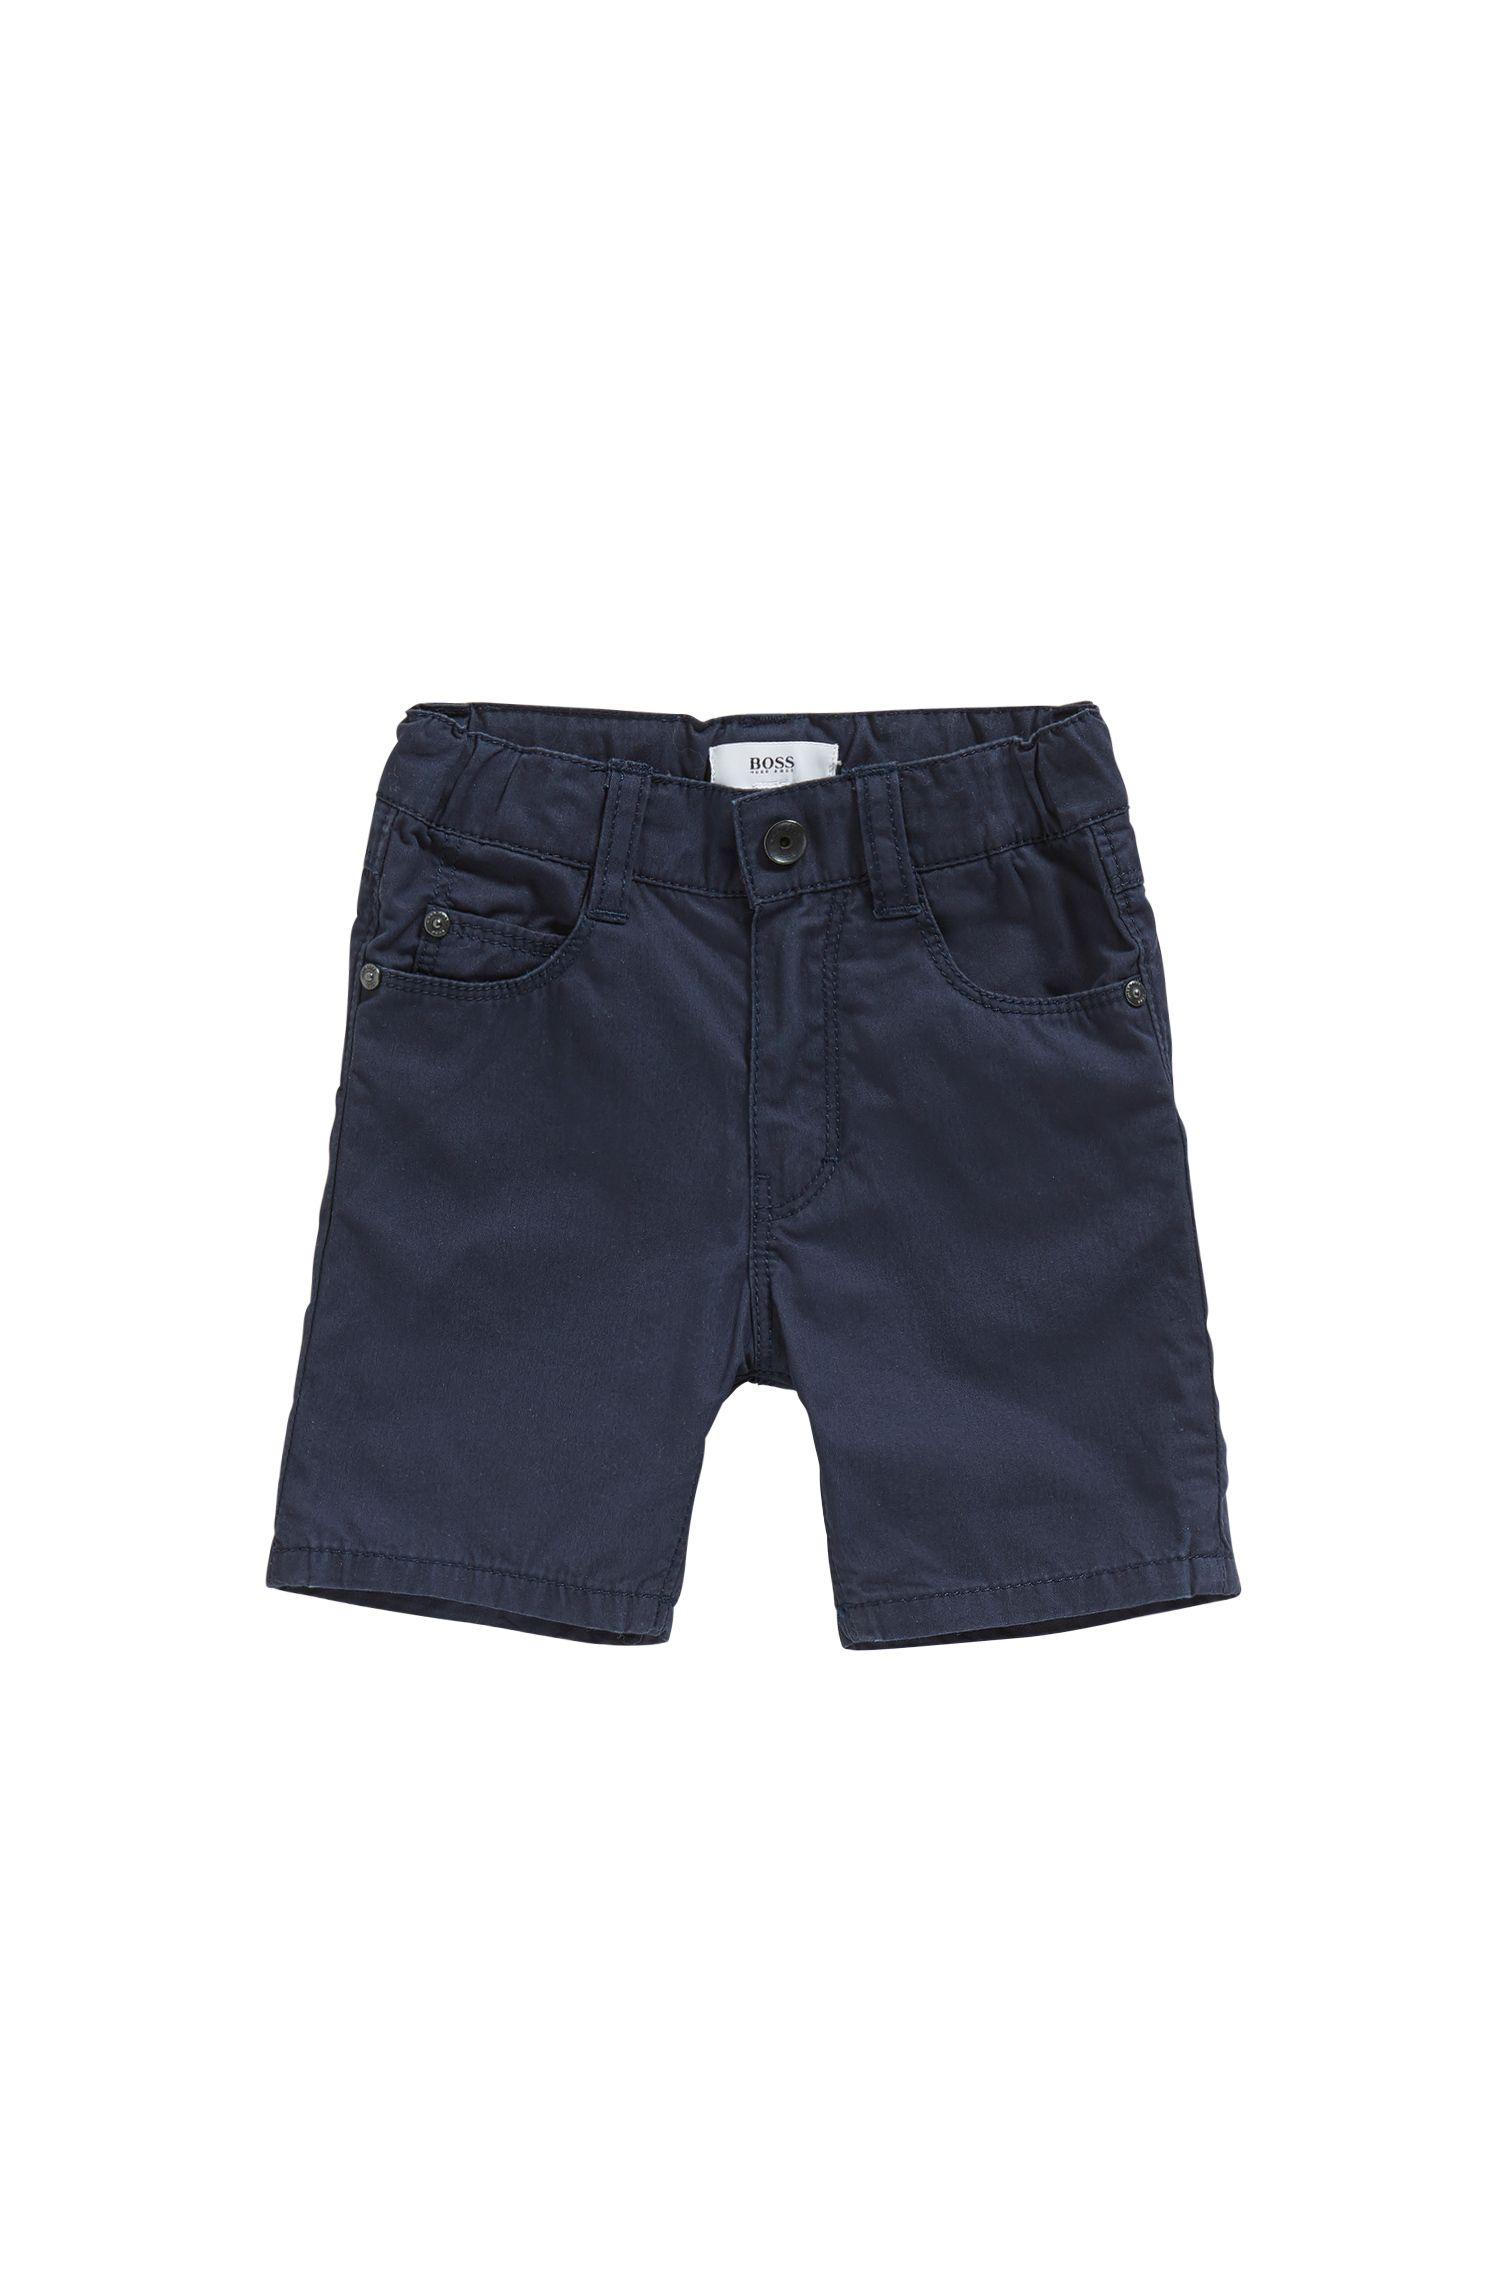 Baby-Shorts aus Baumwolle im Five-Pocket-Stil: 'J04259'